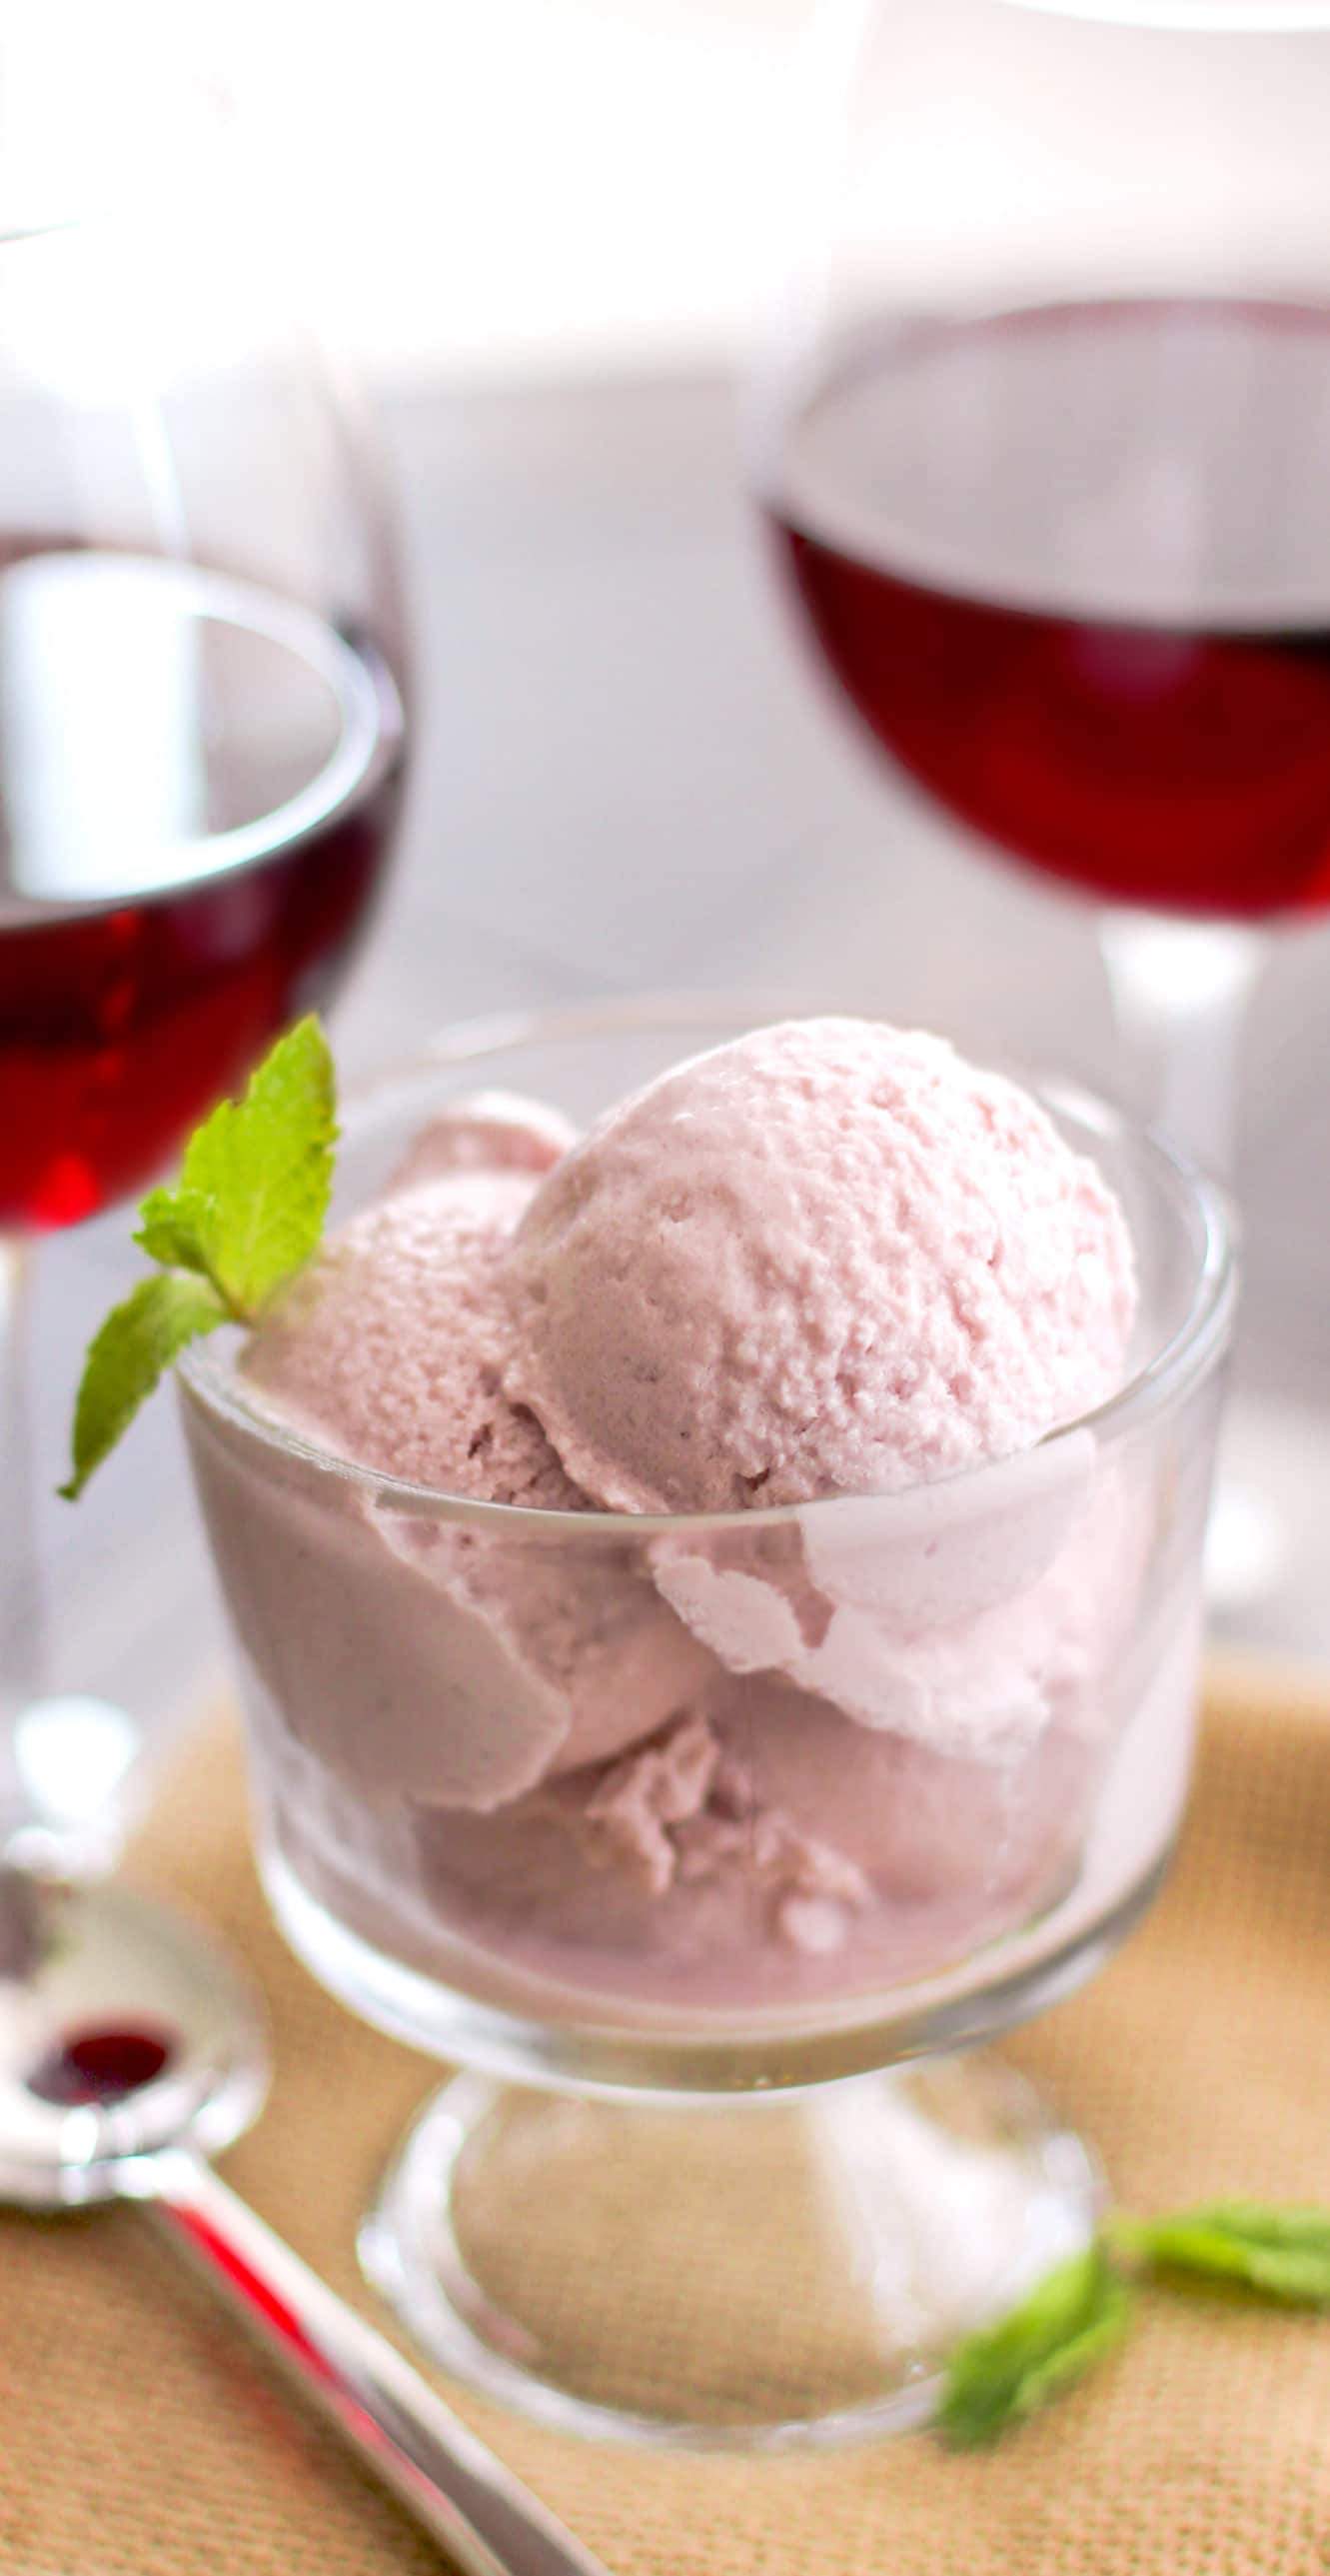 Healthy Red Wine Ice Cream (no sugar added, high protein) - Healthy Dessert Recipes at Desserts with Benefits